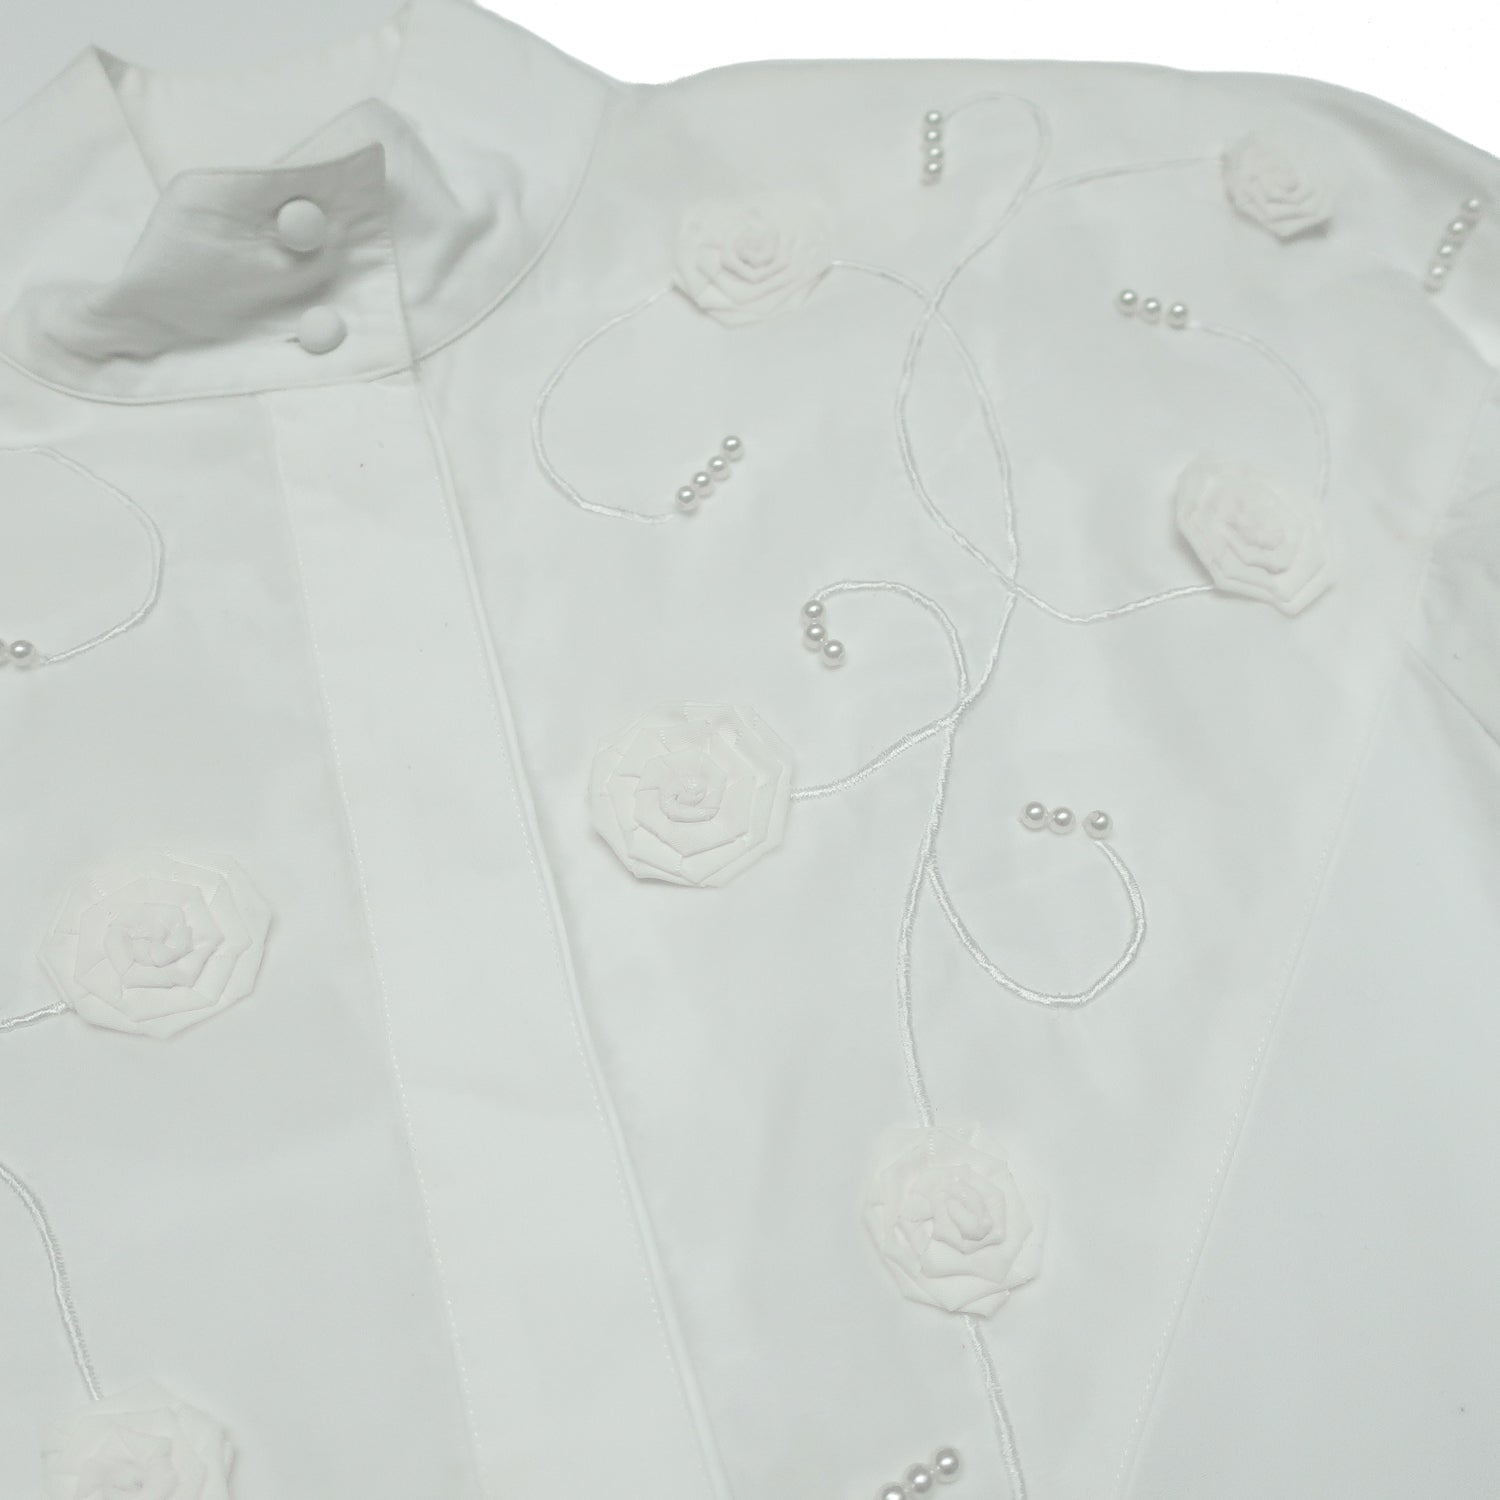 Second Room Vintage Clothing. Vintage long sleeve white cotton blouse, with three dimensional fabric flowers and faux pearl beading on the chest.  Free Shipping on all orders within North America.